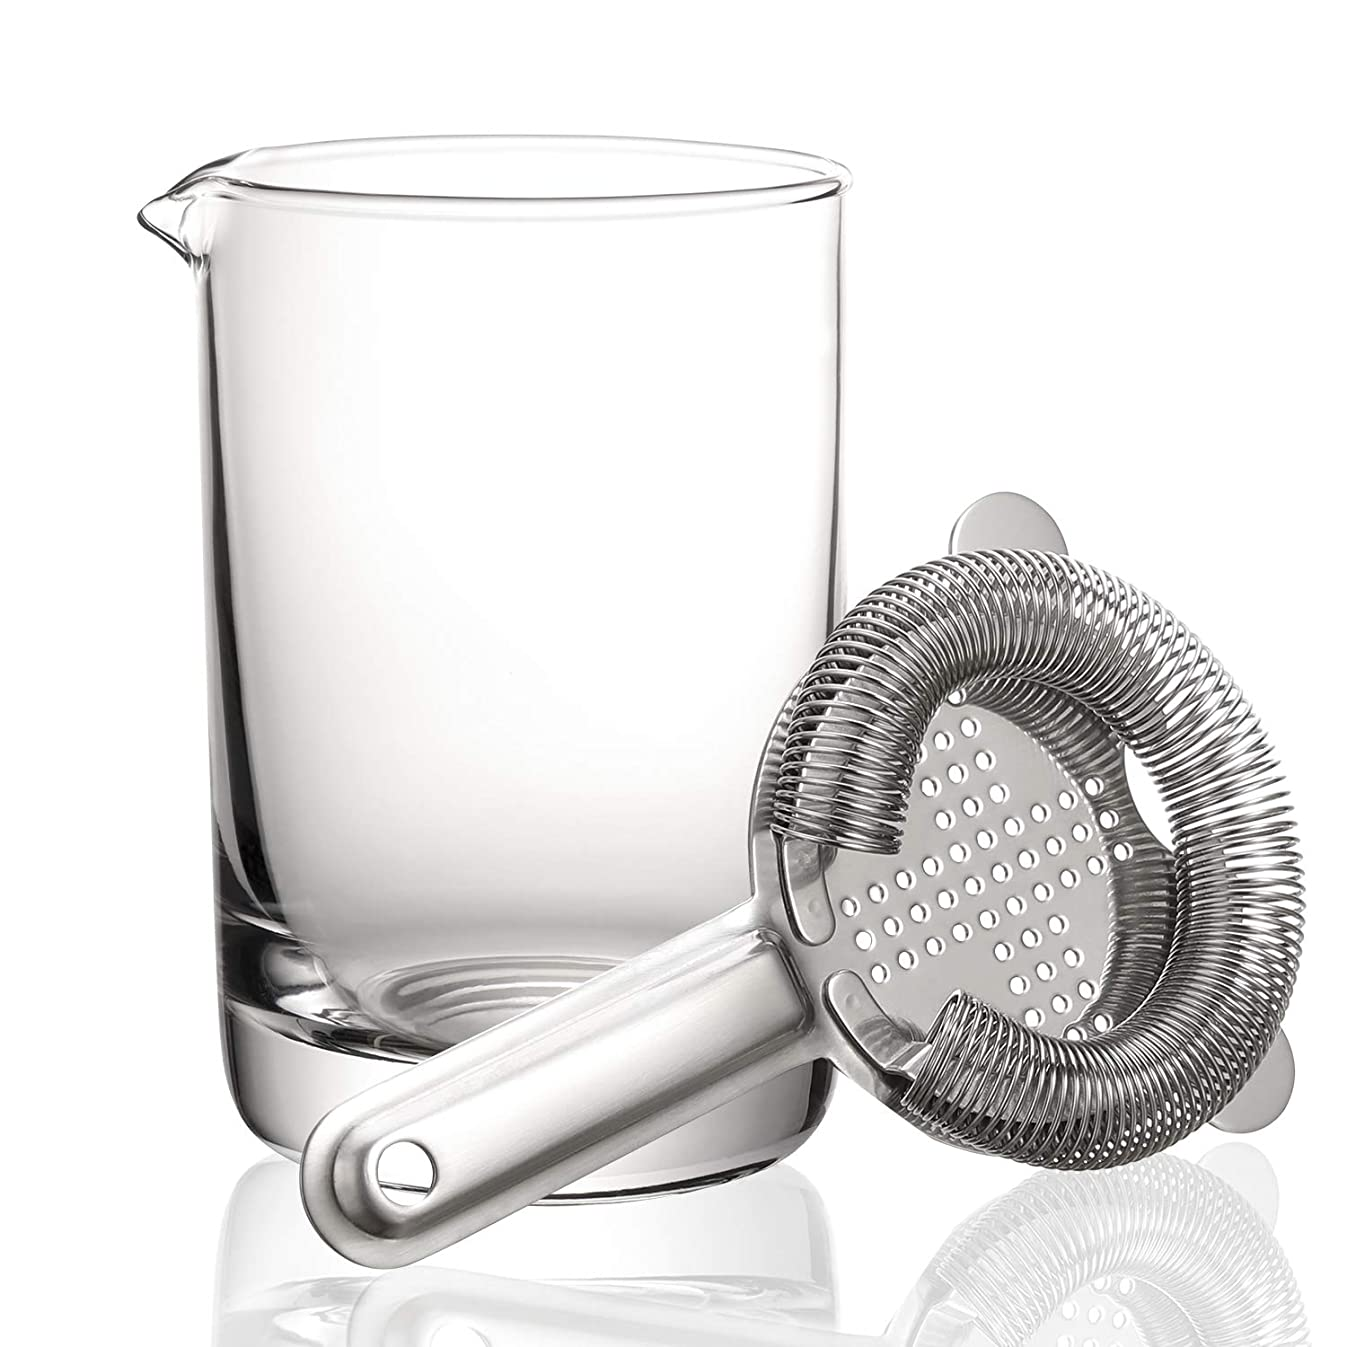 Hiware Cocktail Mixing Glass with Strainer - Professional Bartender Kit, 550ml